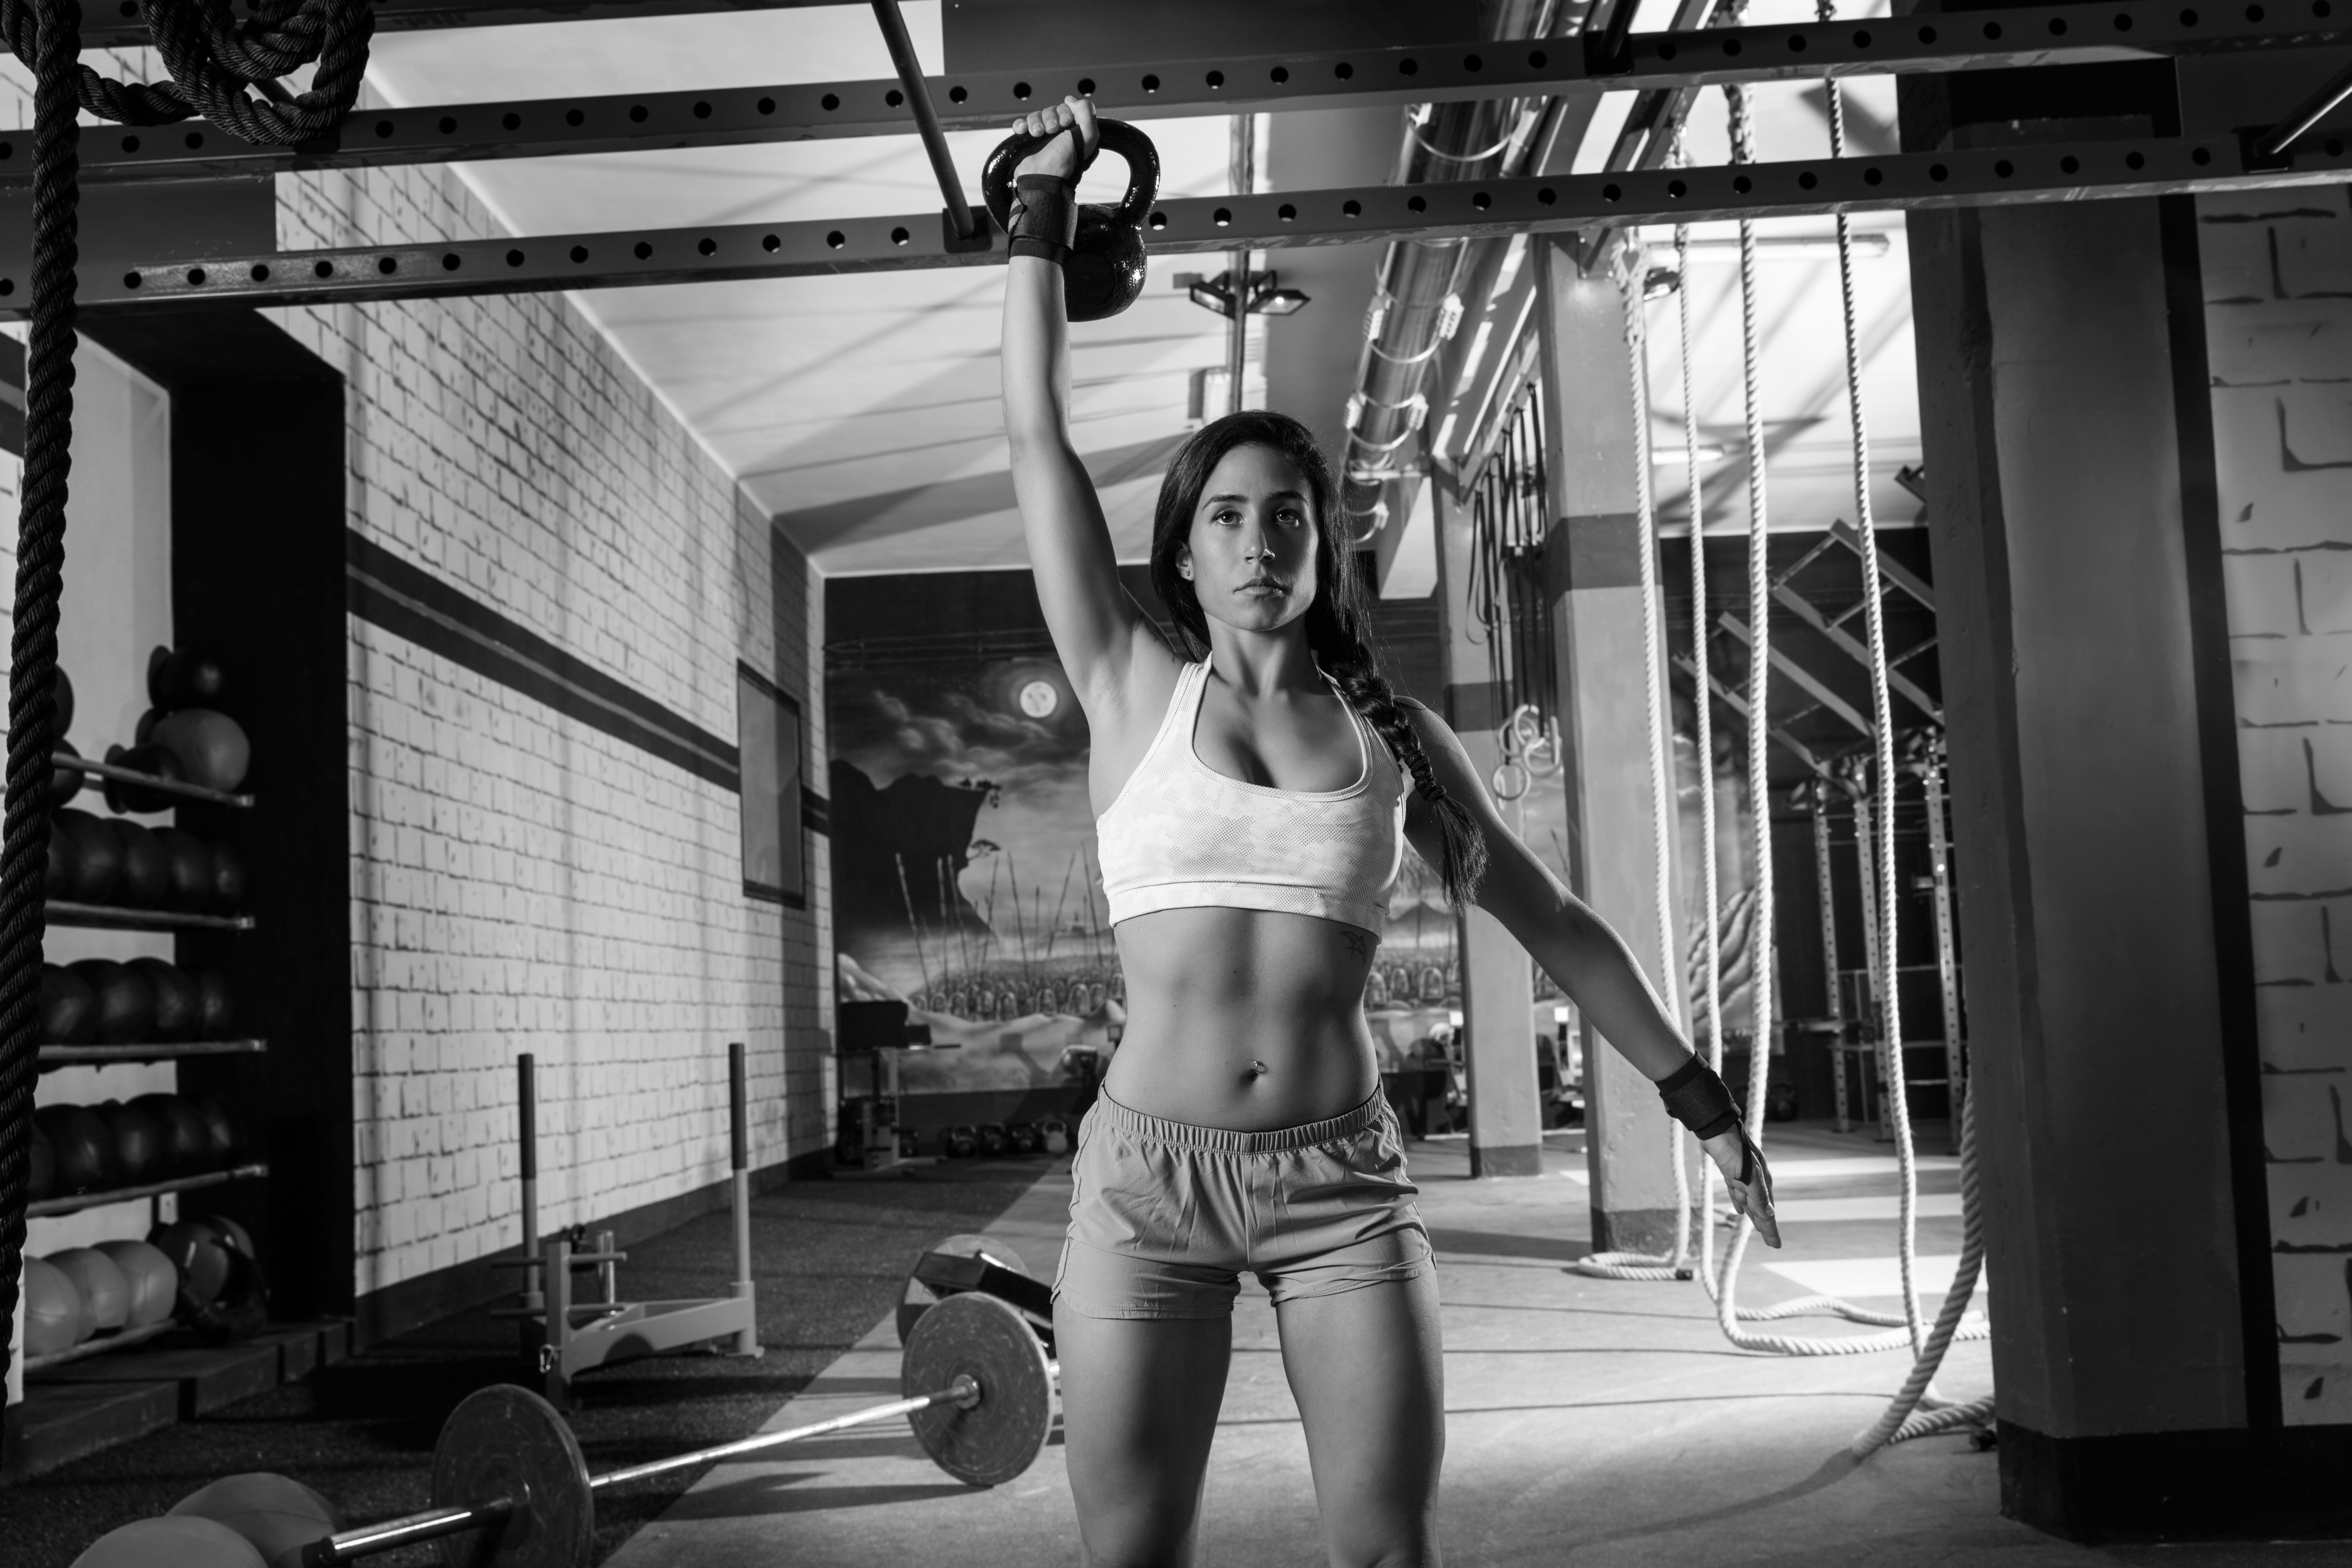 Crossfit Wallpapers 68 images in Collection Page 1 5760x3840